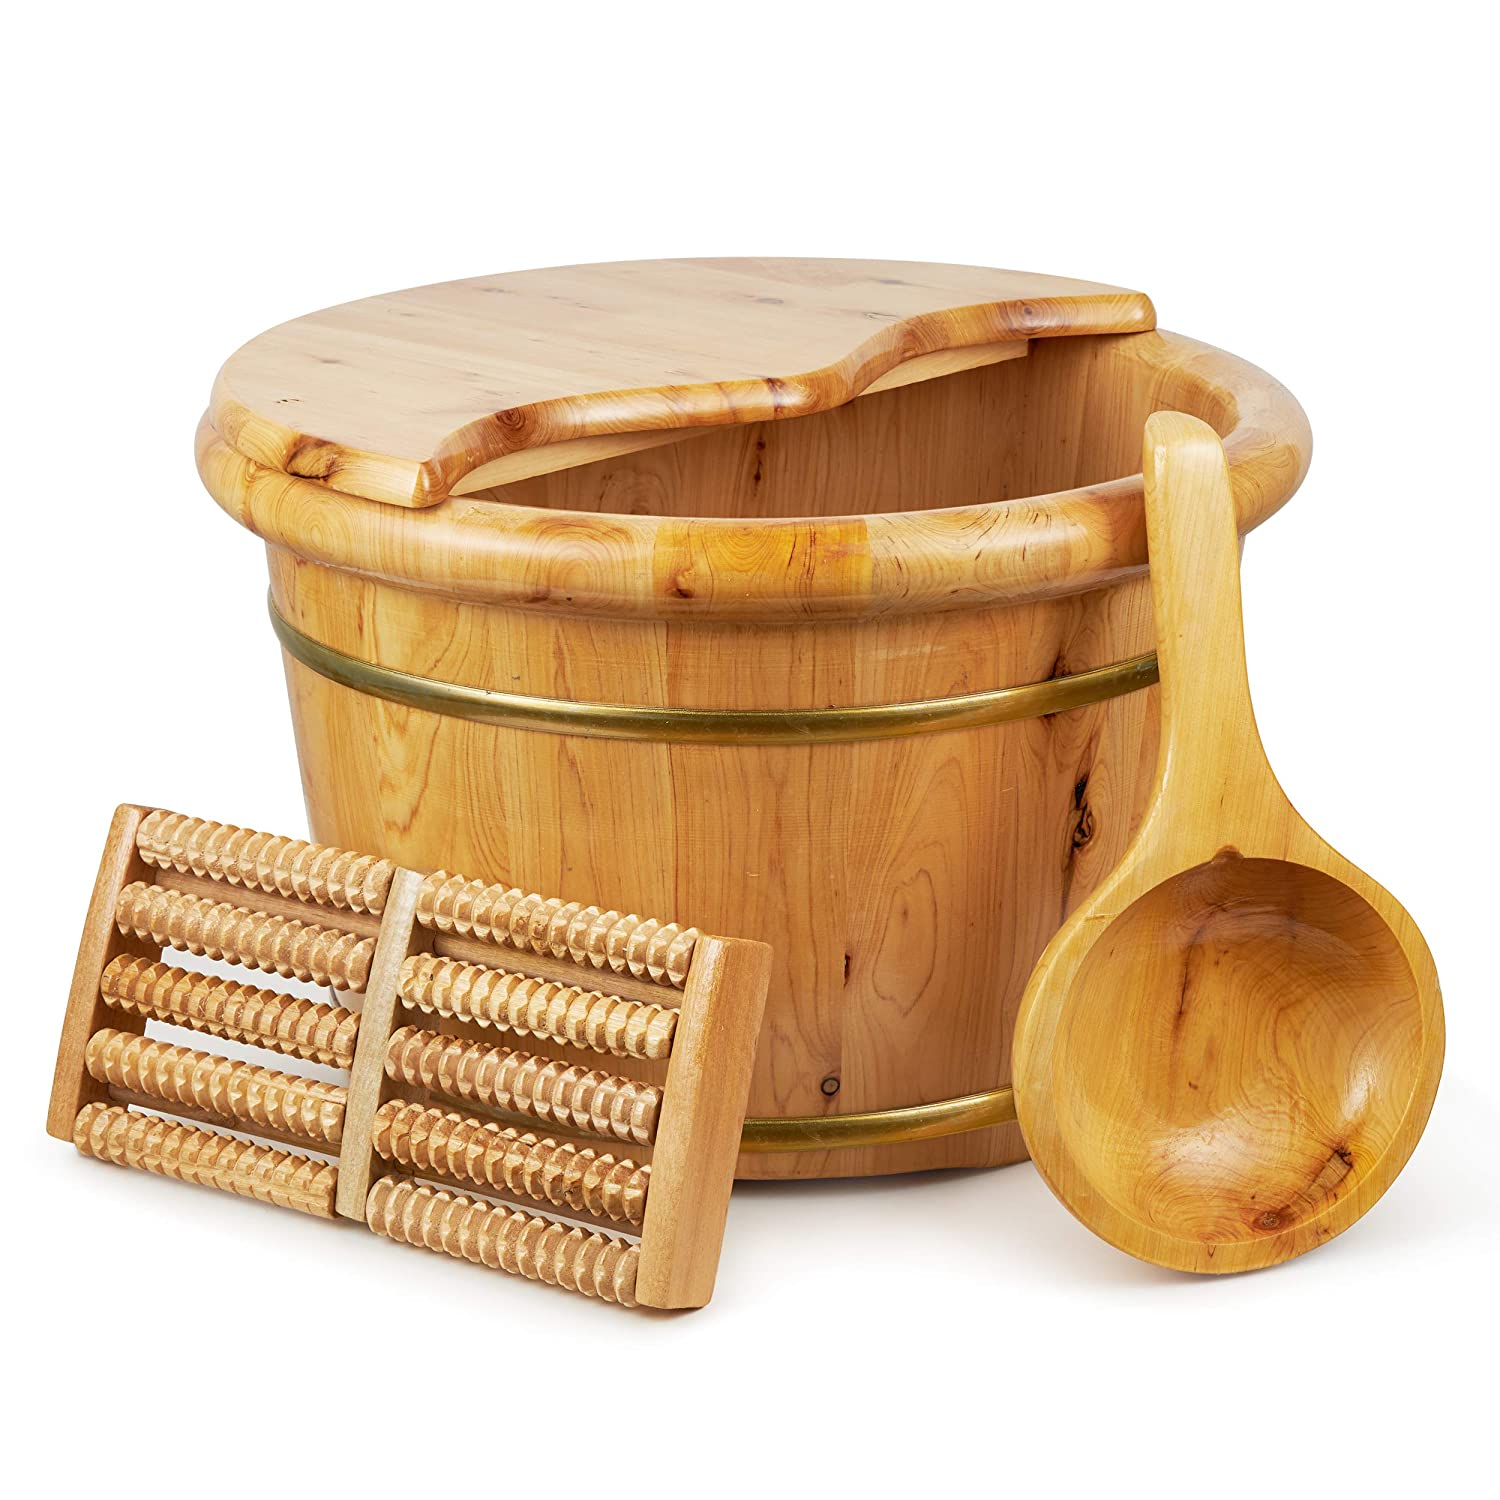 Wooden Foot Soak Tub Spa Bucket- 15 Inch Solid Cedar Wood Feet Bathing Barrel with Cover Lid and Massager Roller Spoon for Foot Detox